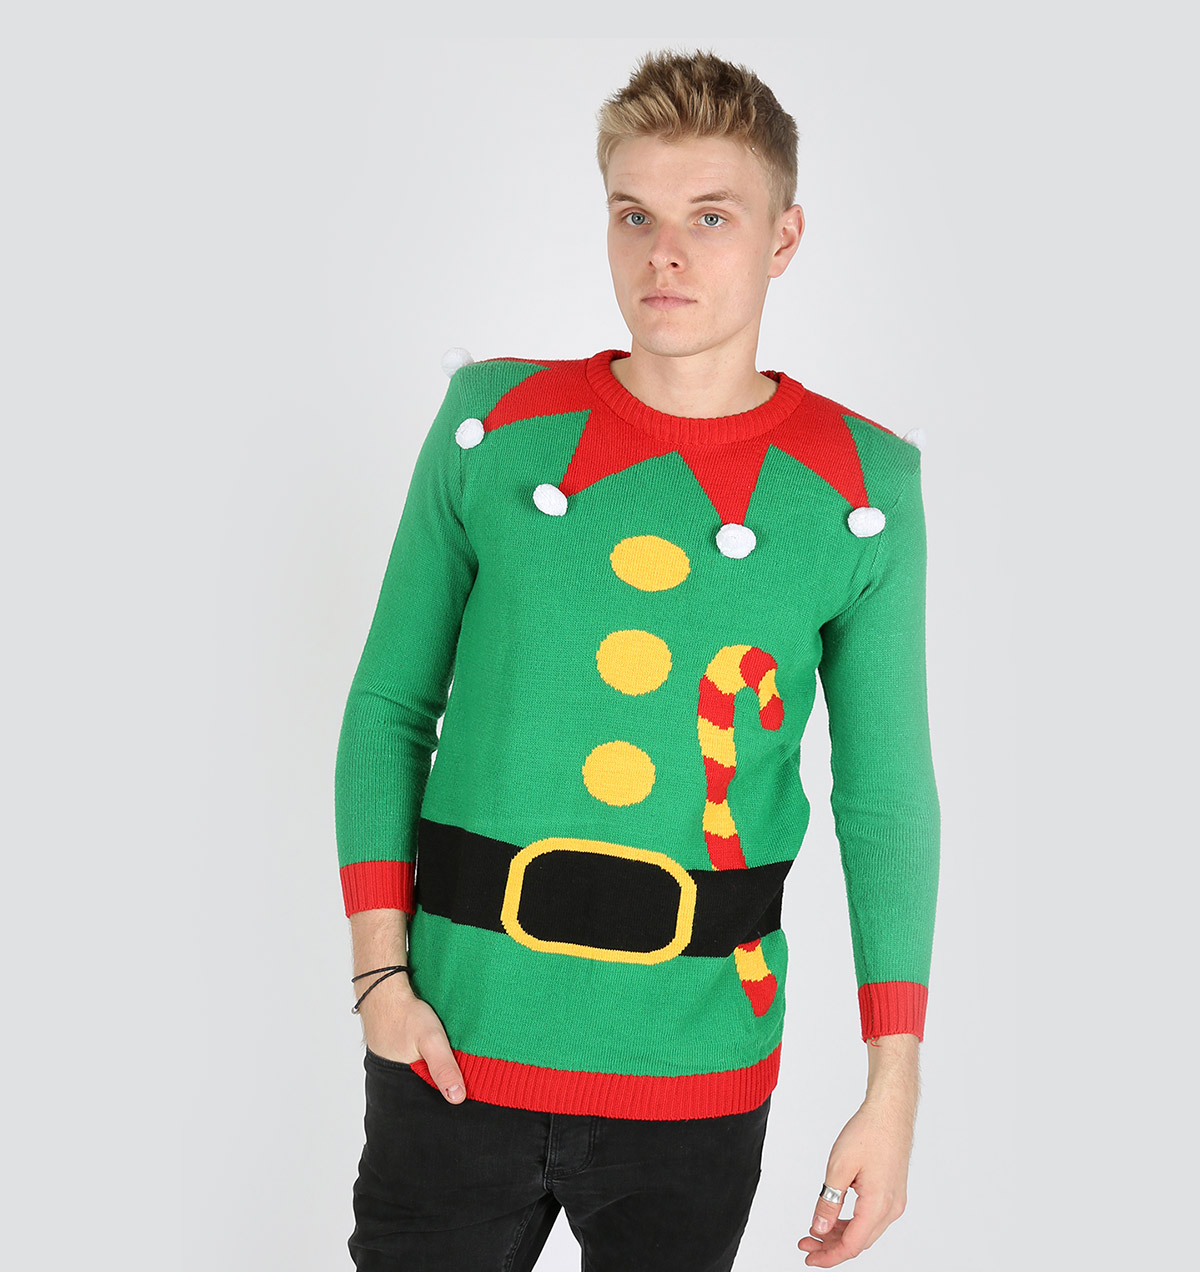 knitted christmas elf sweater green body - Ugly Christmas Sweater Elf